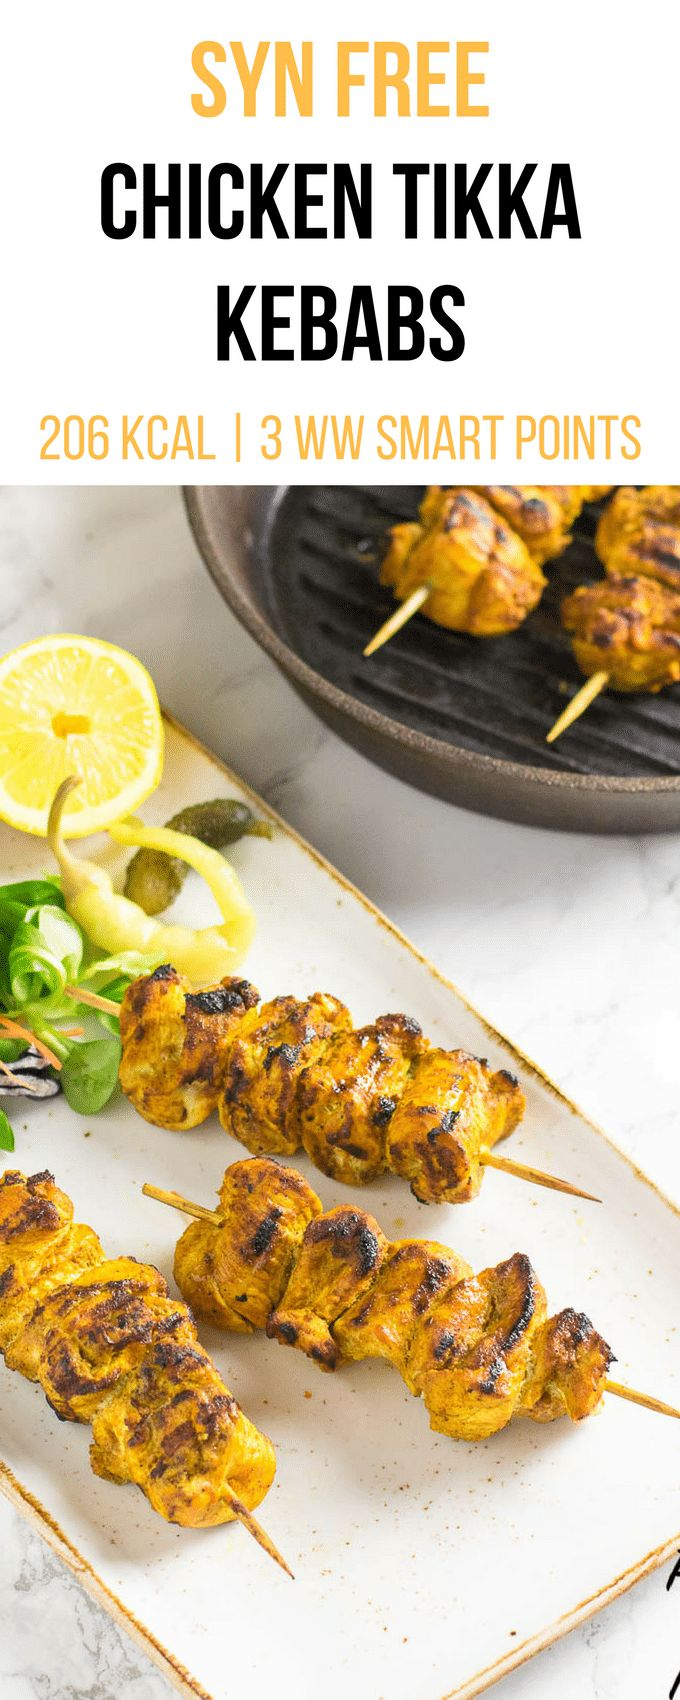 Syn Free Chicken Tikka Kebabs | Syn free Slimming World | 3 Weight Watchers Smart Points | 206Kcal | pinchofnom.com